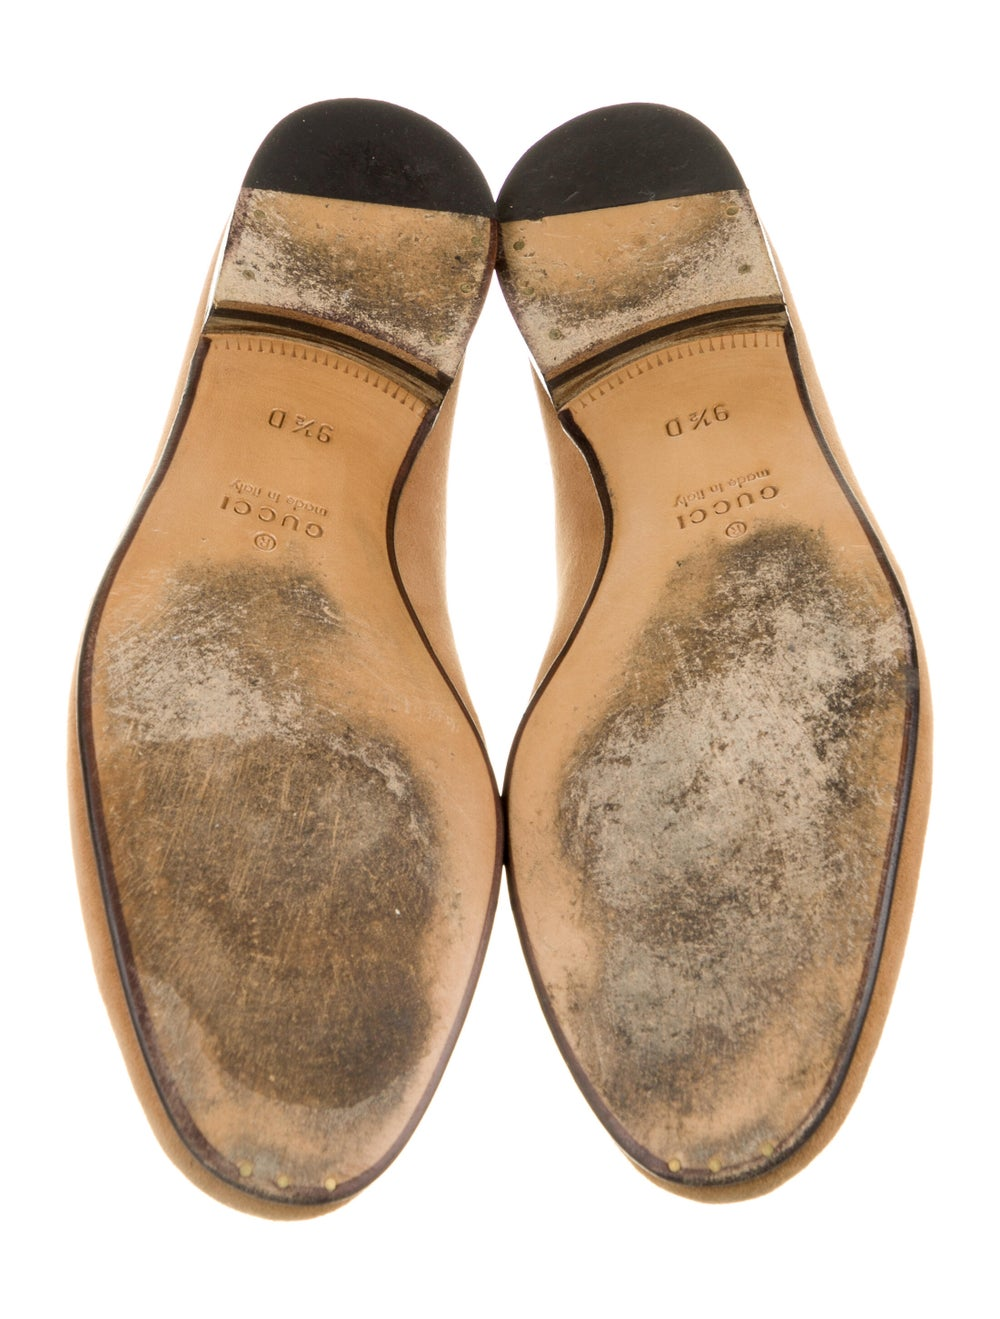 Gucci Horsebit Accent Suede Dress Loafers Brown - image 5